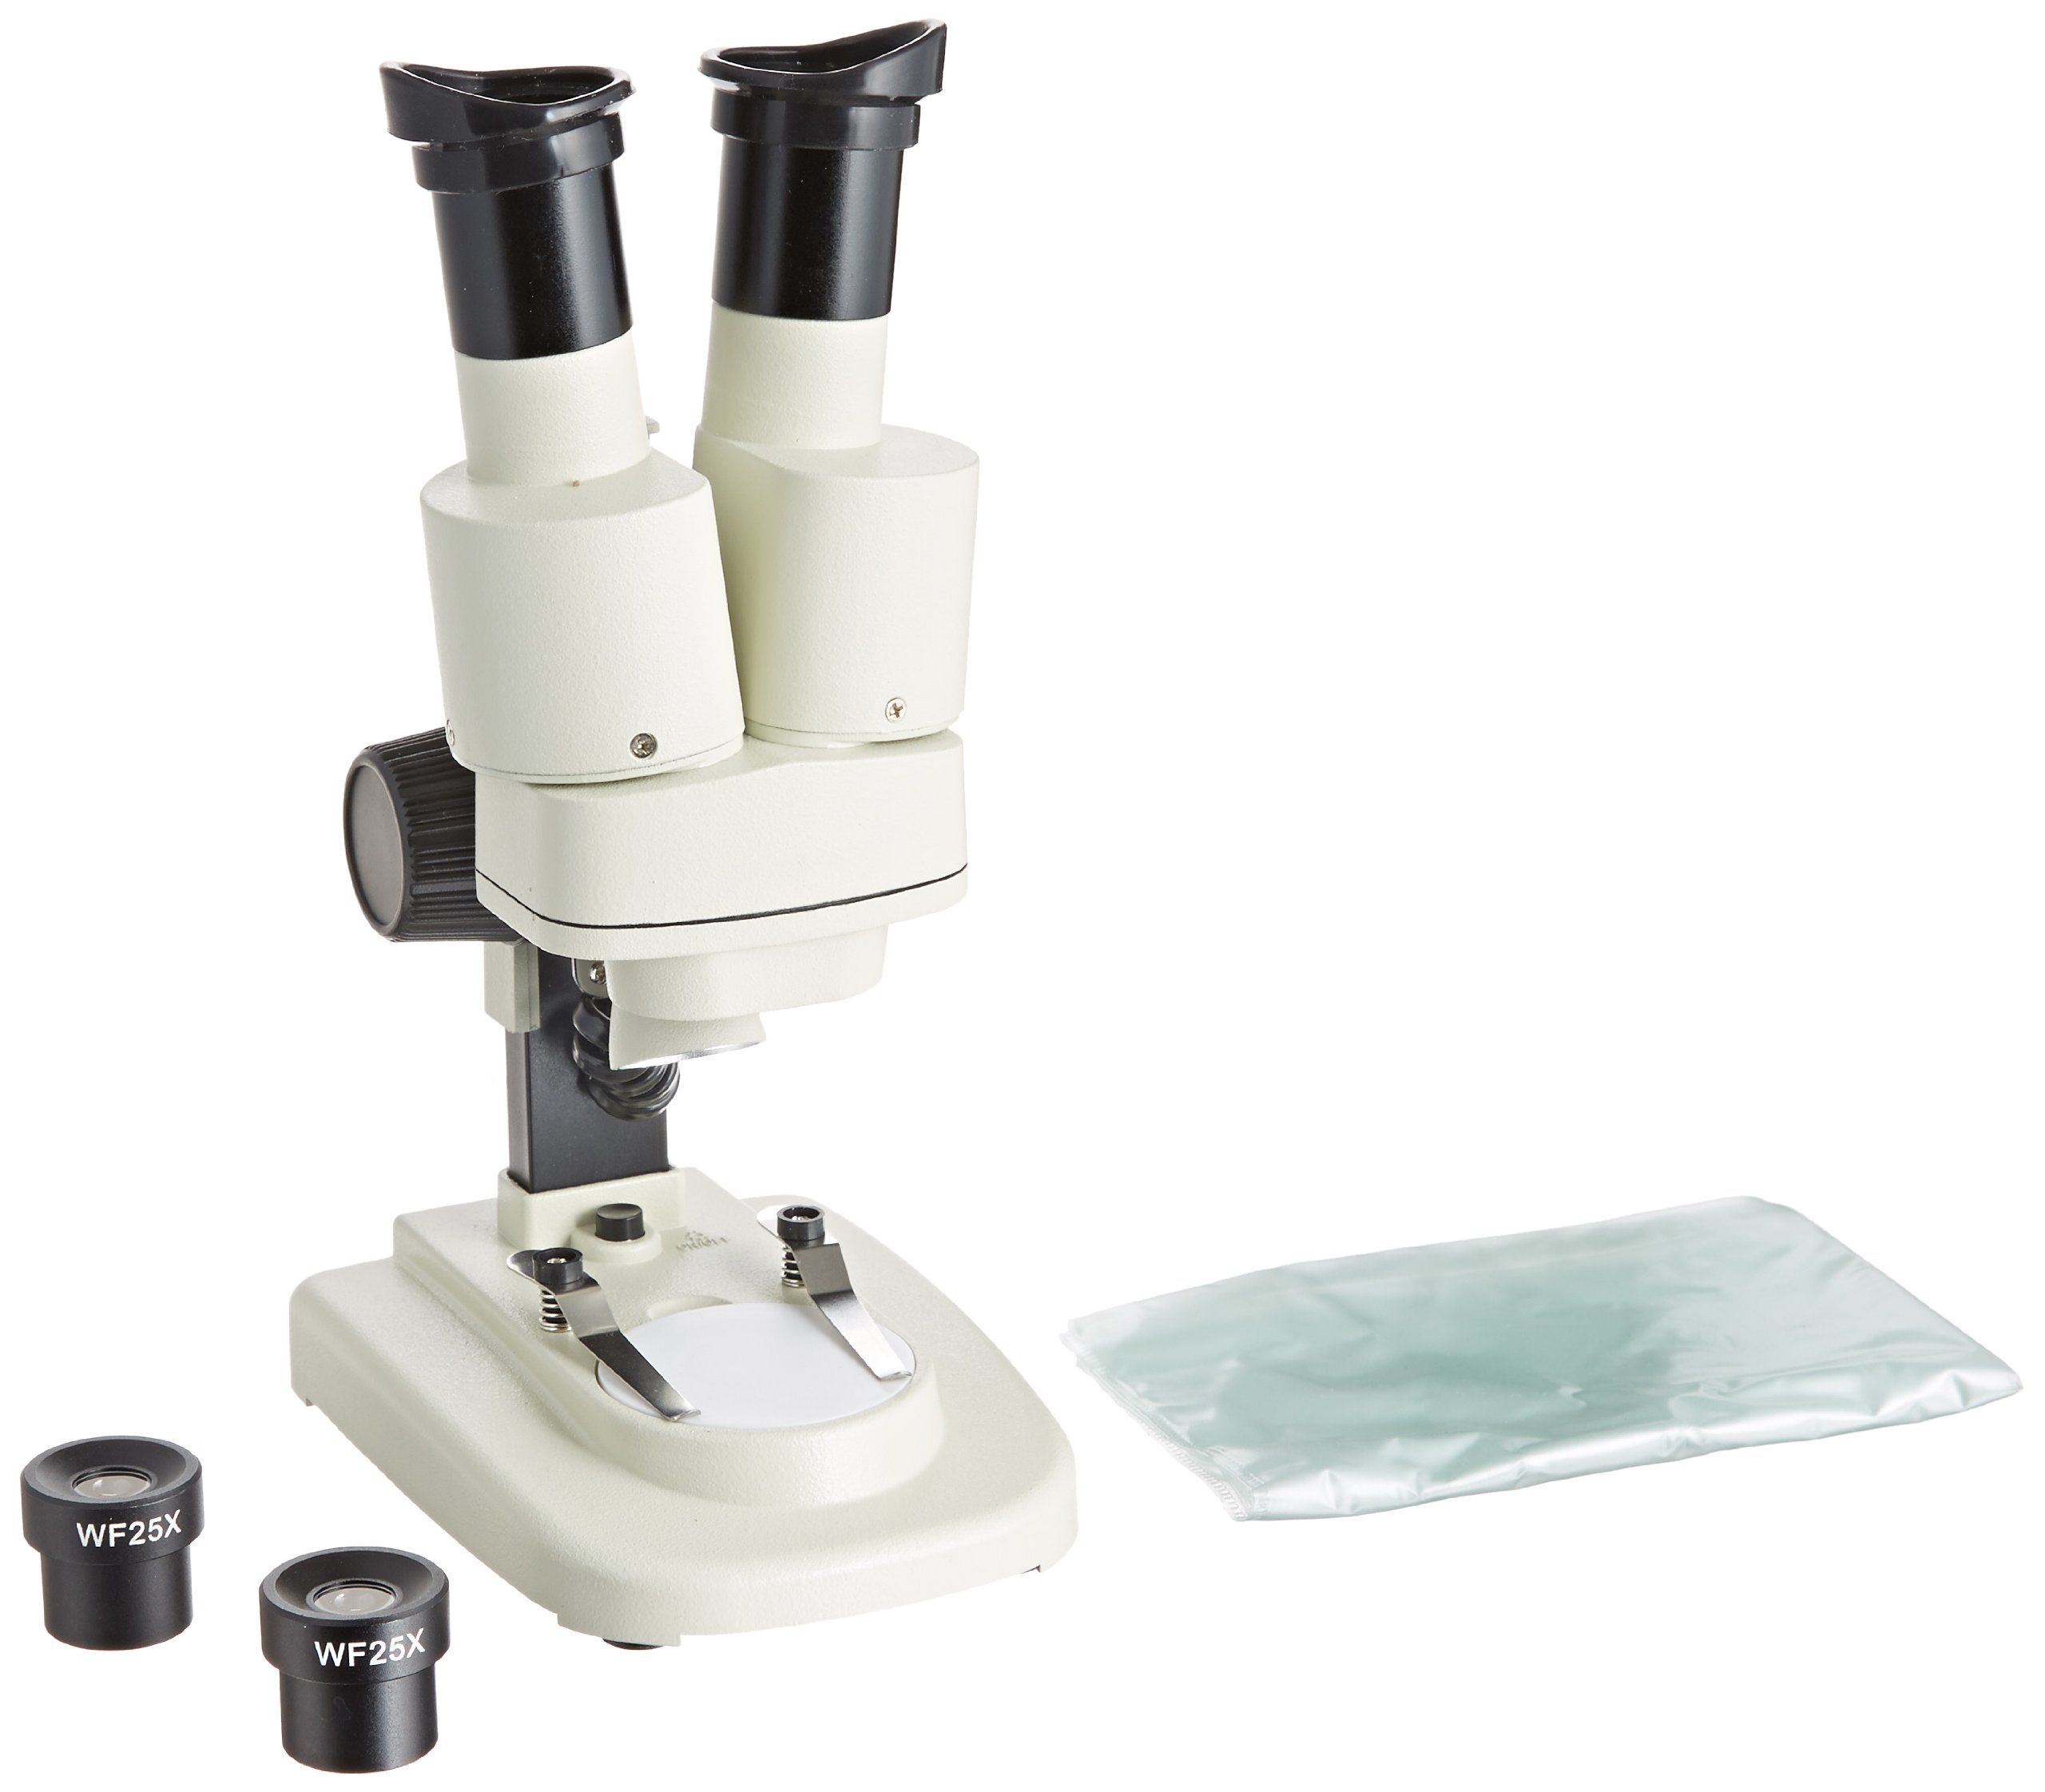 AMSCOPE-Kids SE100-ZZ-LED 20X-50X Cordless Student Stereo Microscope + LED Light